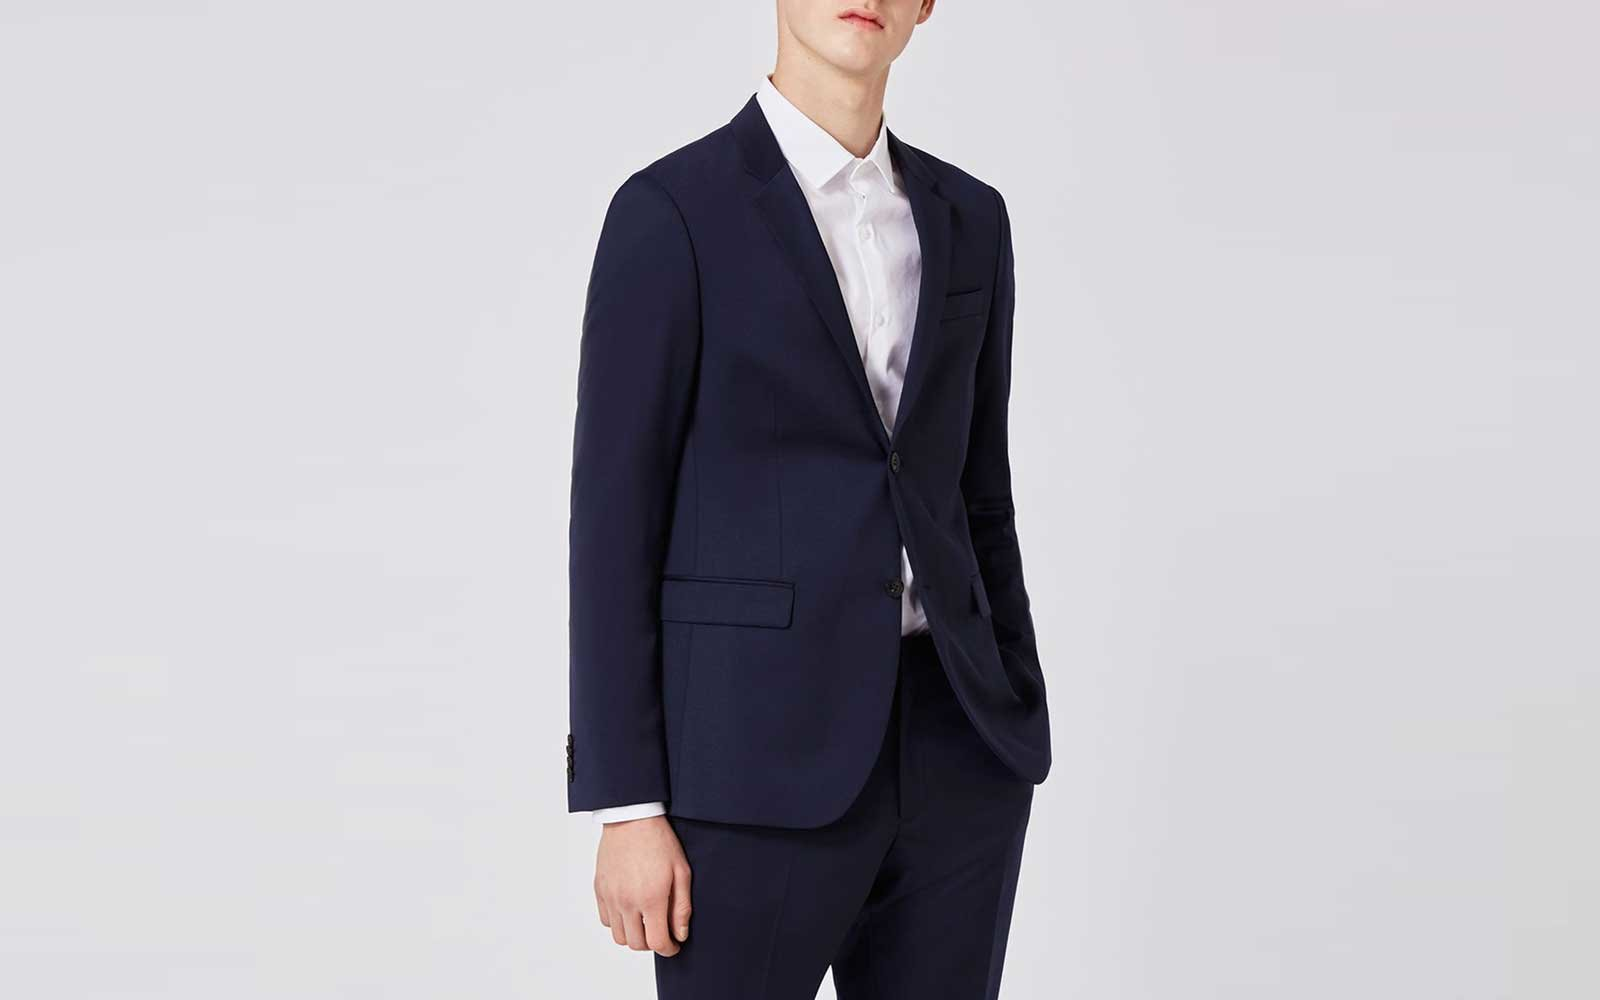 Topman travel suit